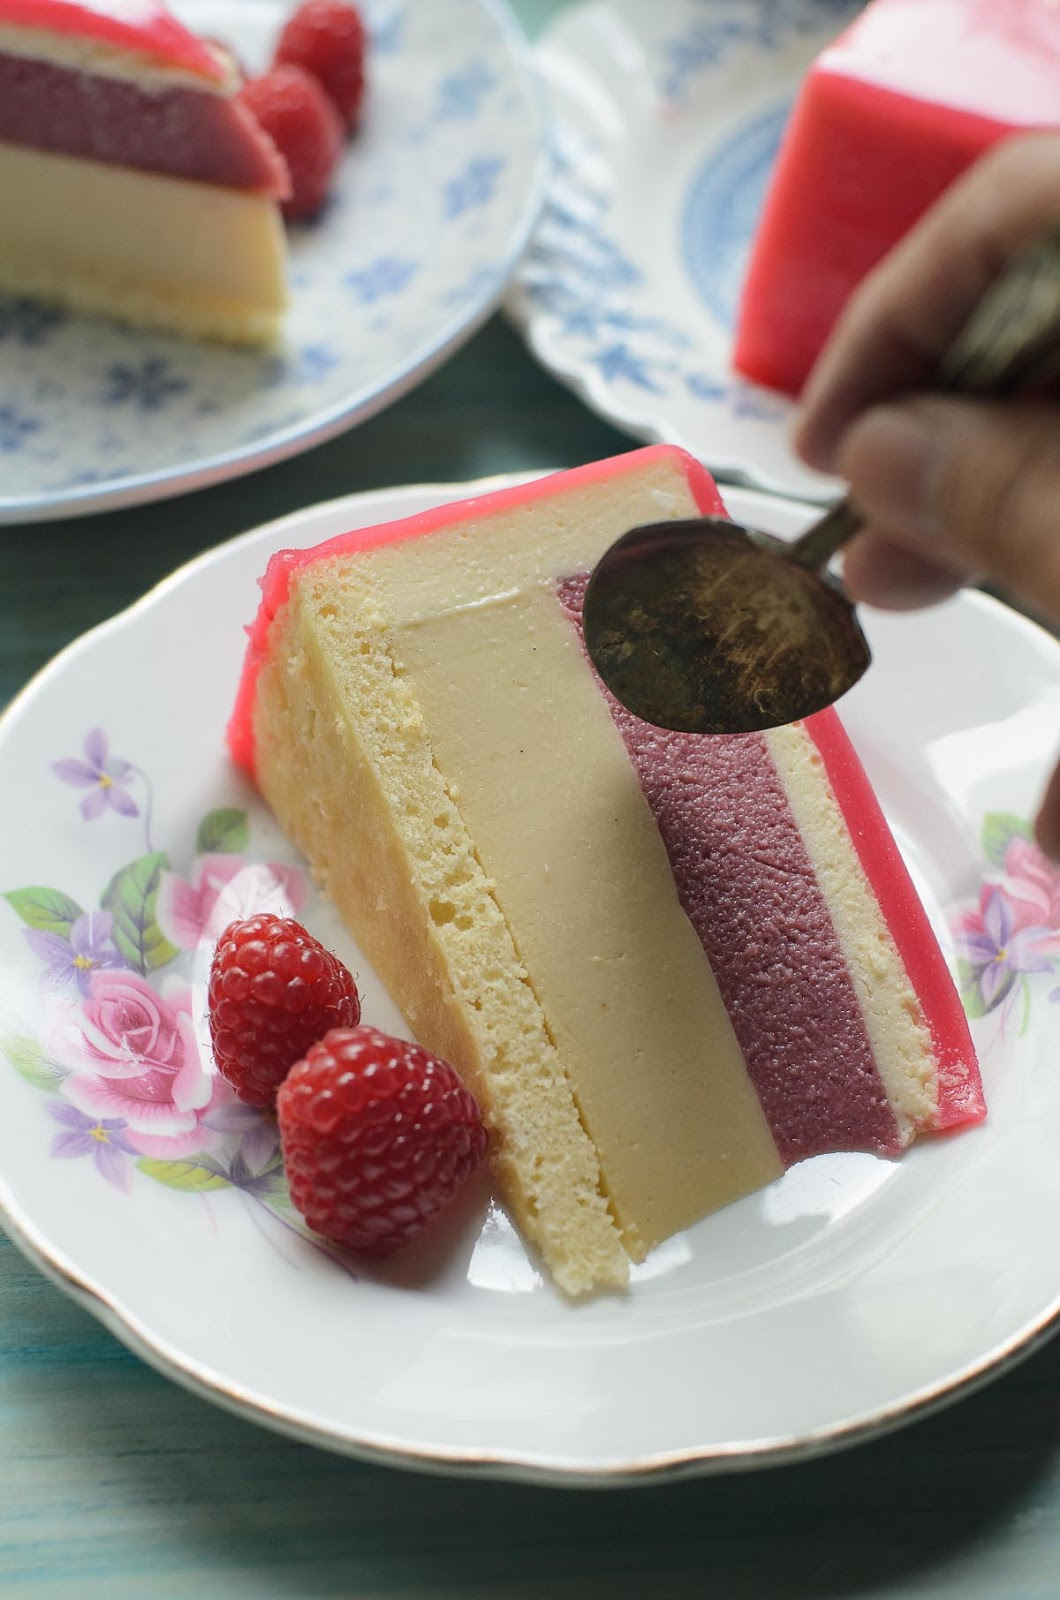 Honey, Raspberry White Chocolate Bavarois Entremet photo